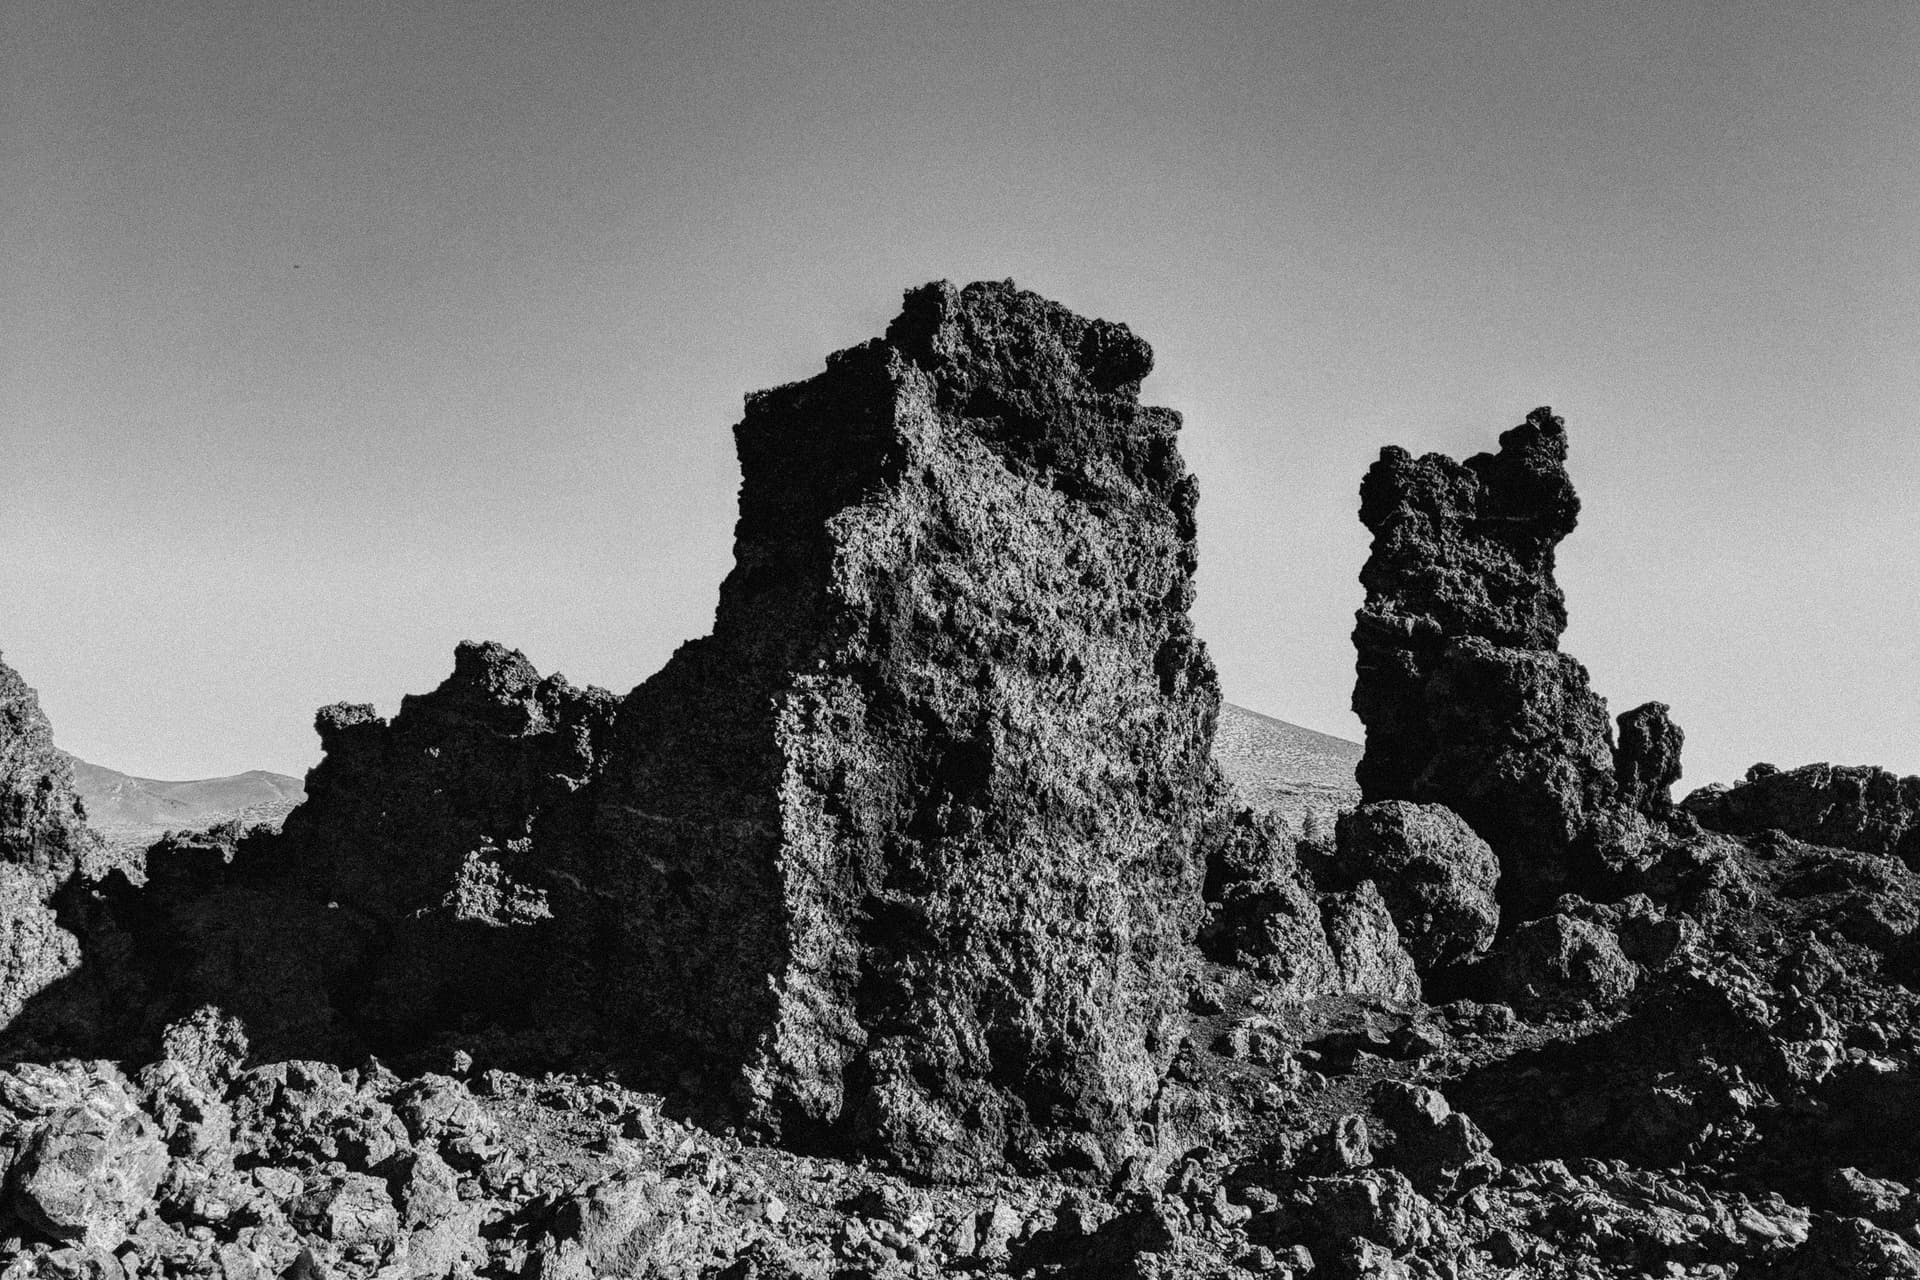 Three distinctive rock pillars rise out of a jagged lava field.